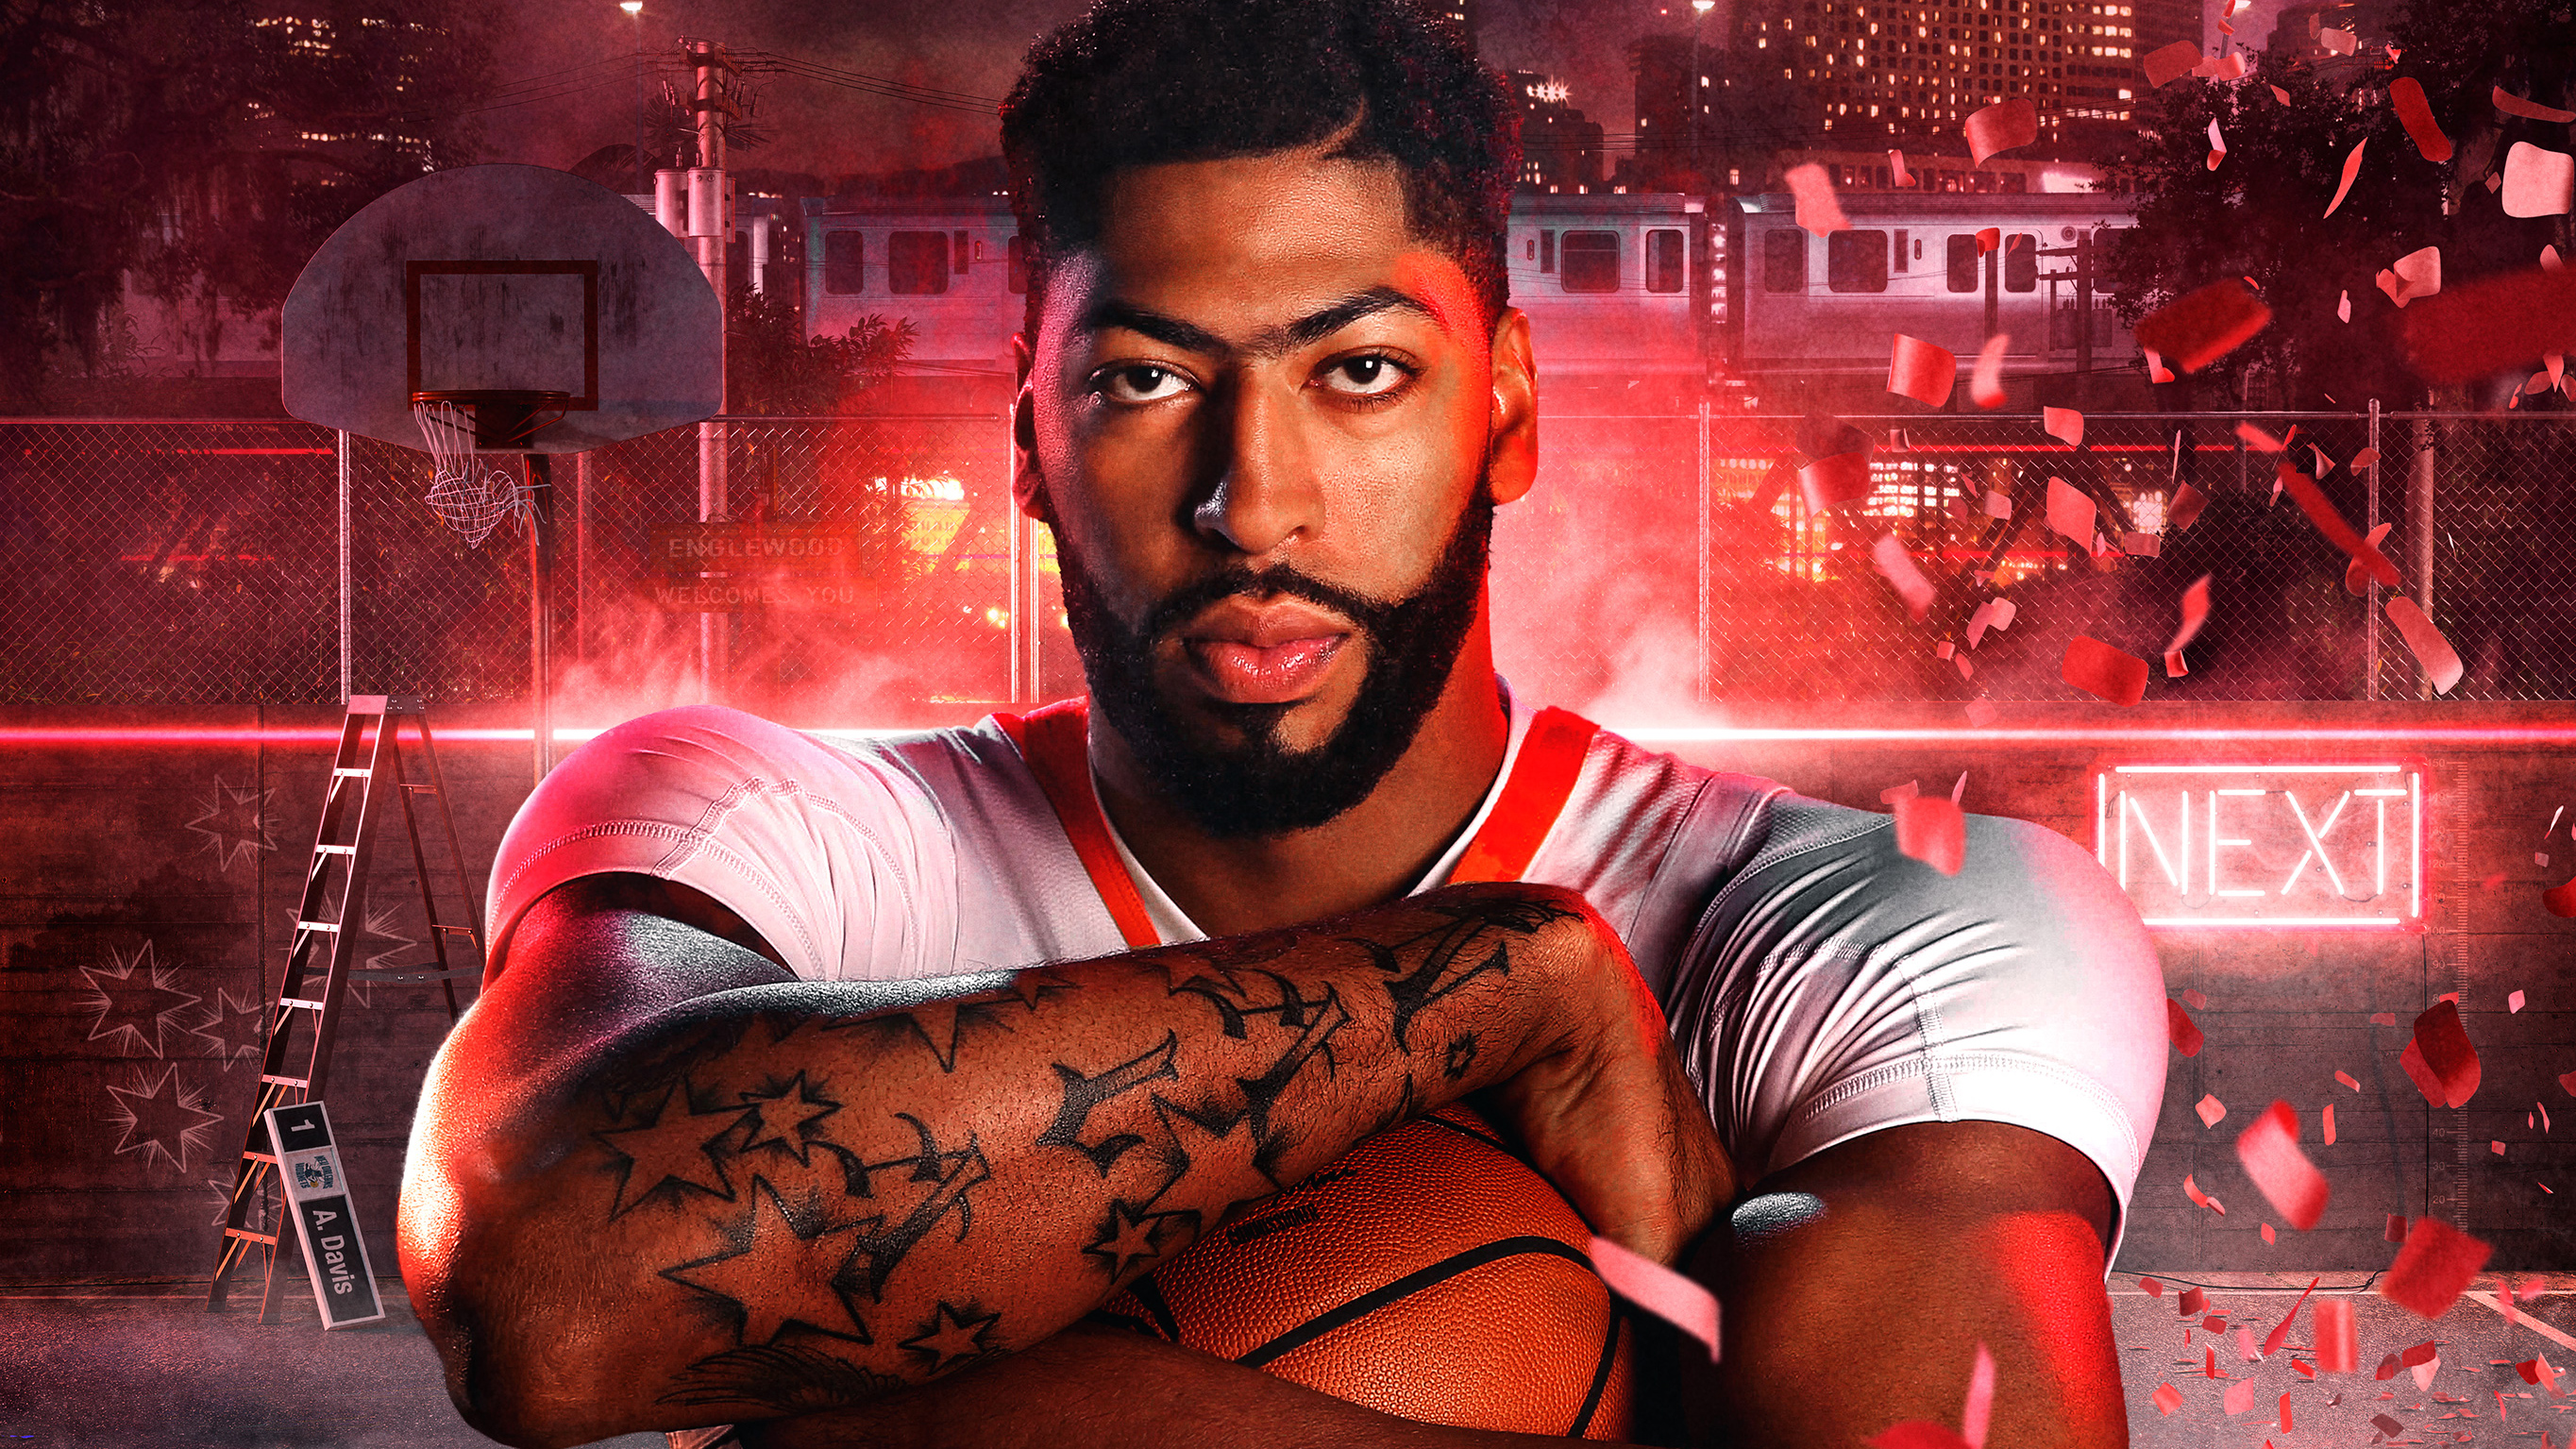 Nba 2k20 Hd Games 4k Wallpapers Images Backgrounds Photos And Pictures